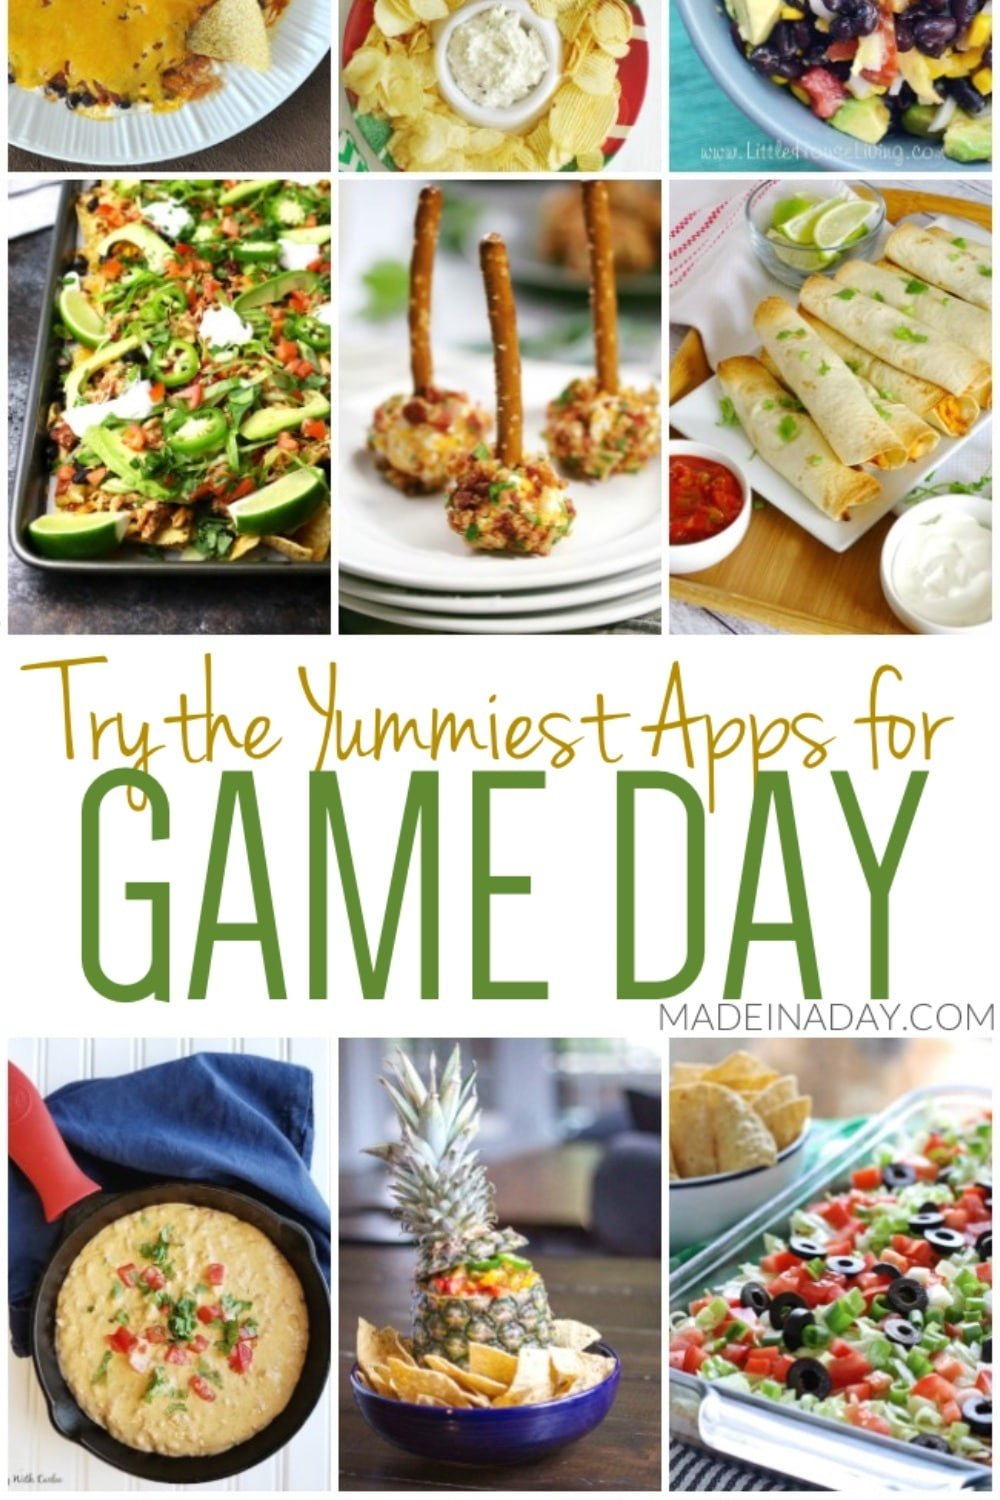 Winning Appetizers for Game Day